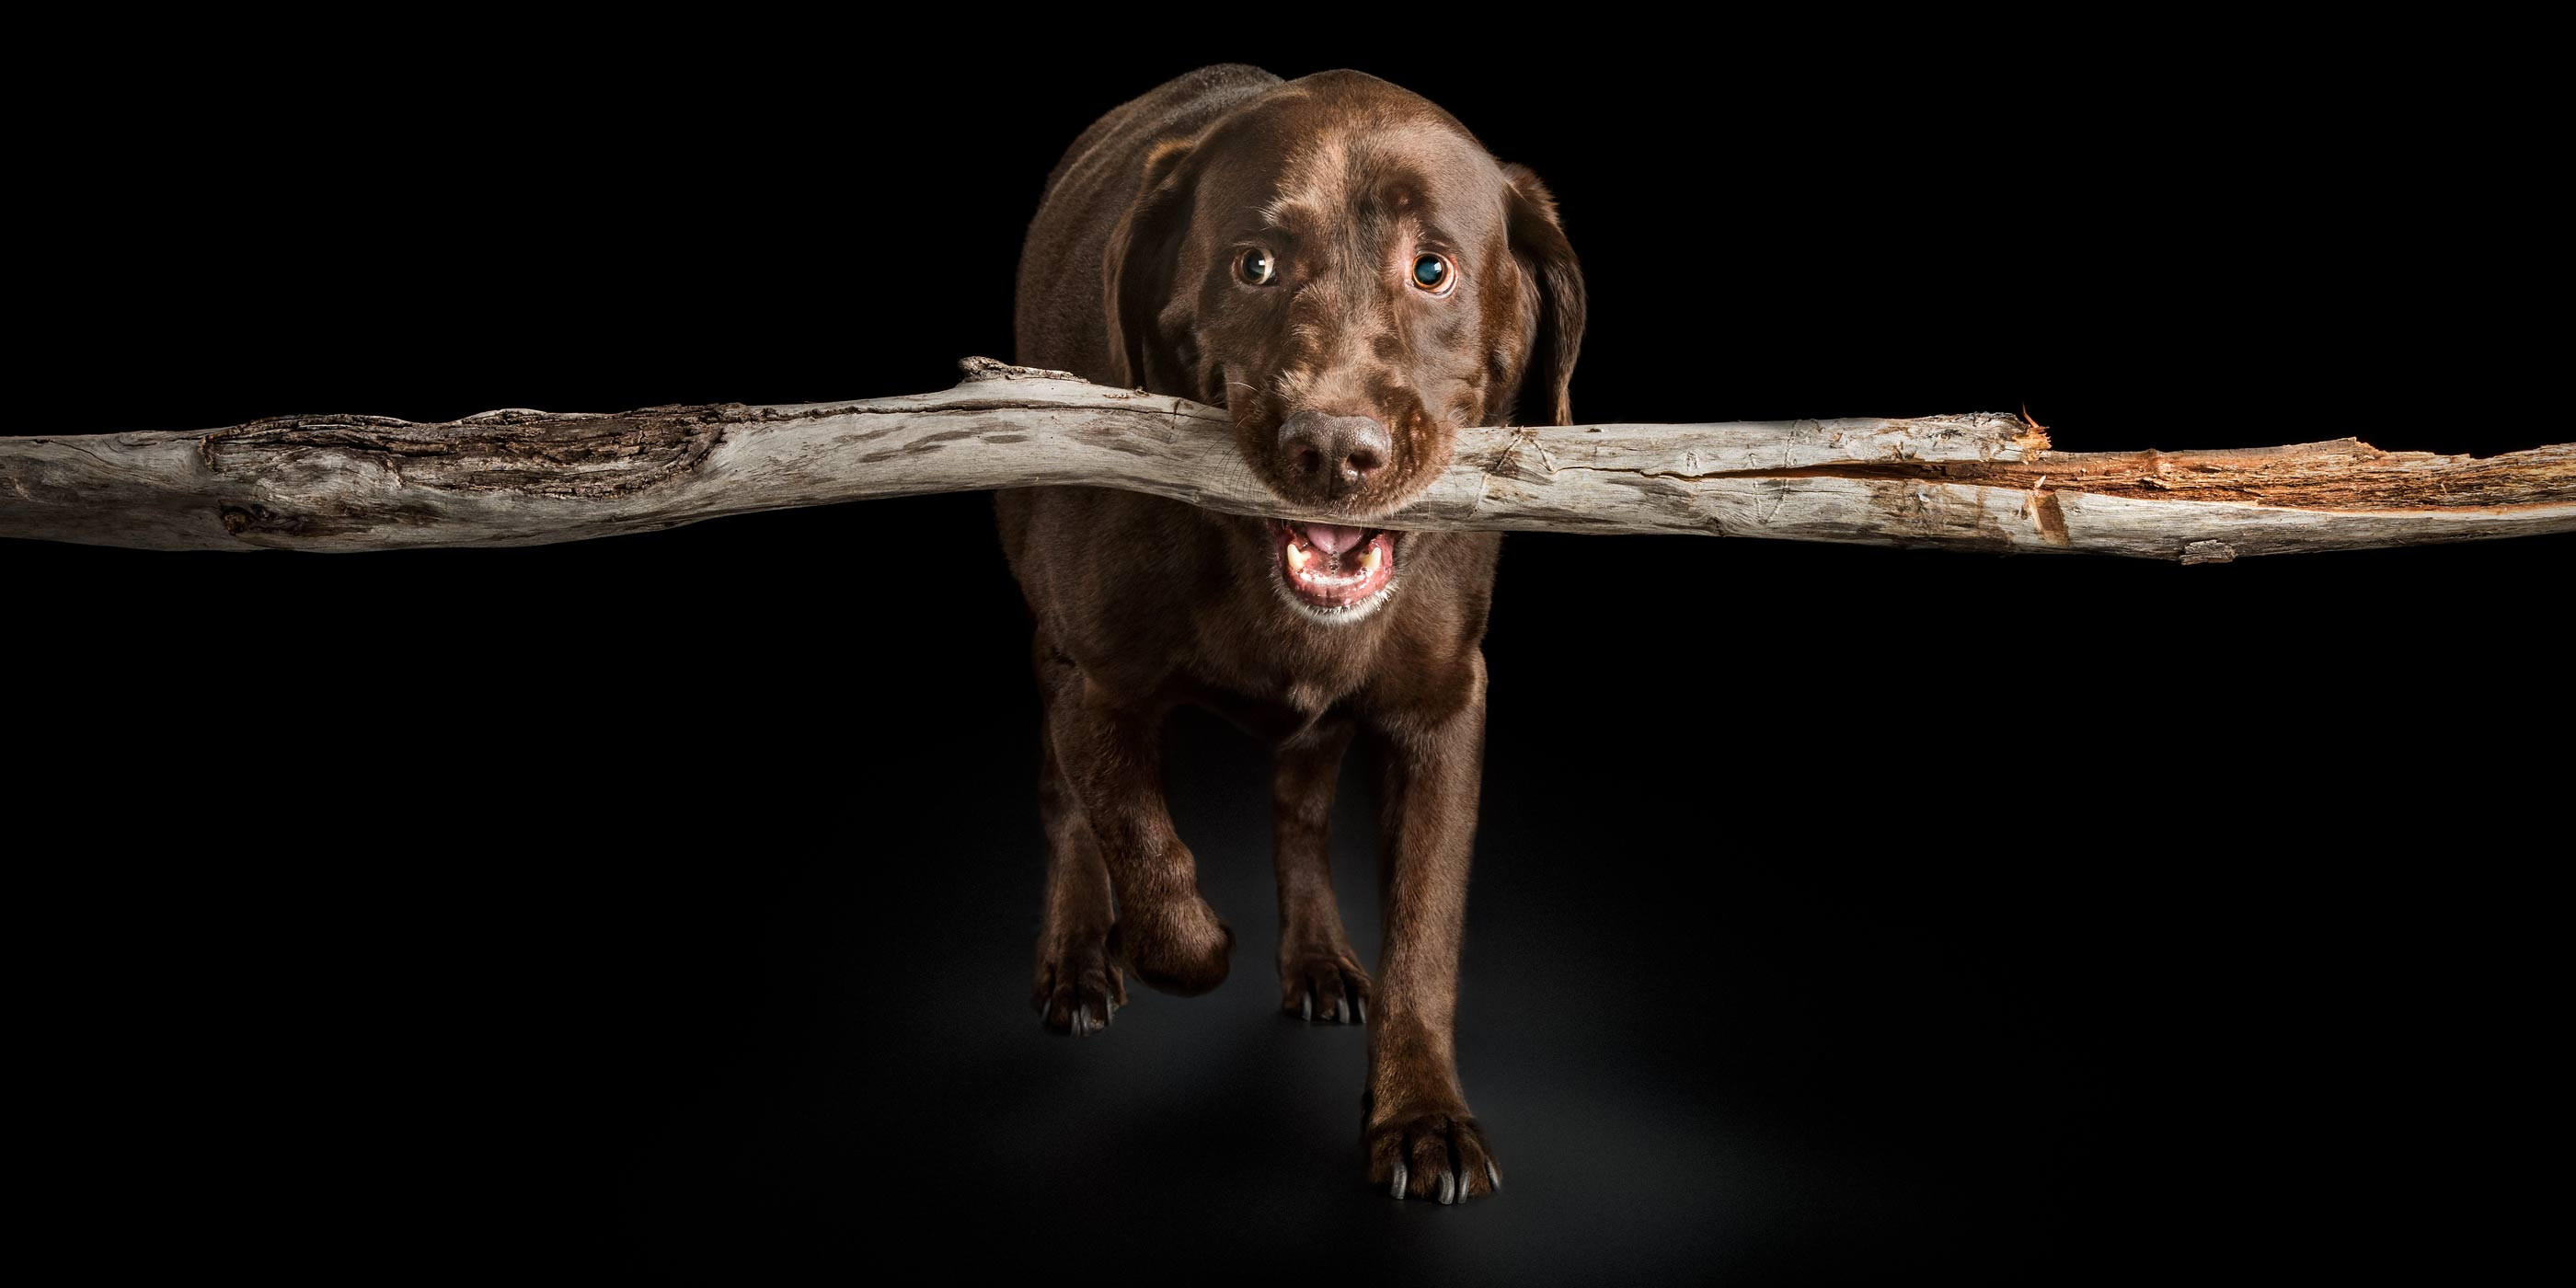 large branch in chocolate labrador's mouth